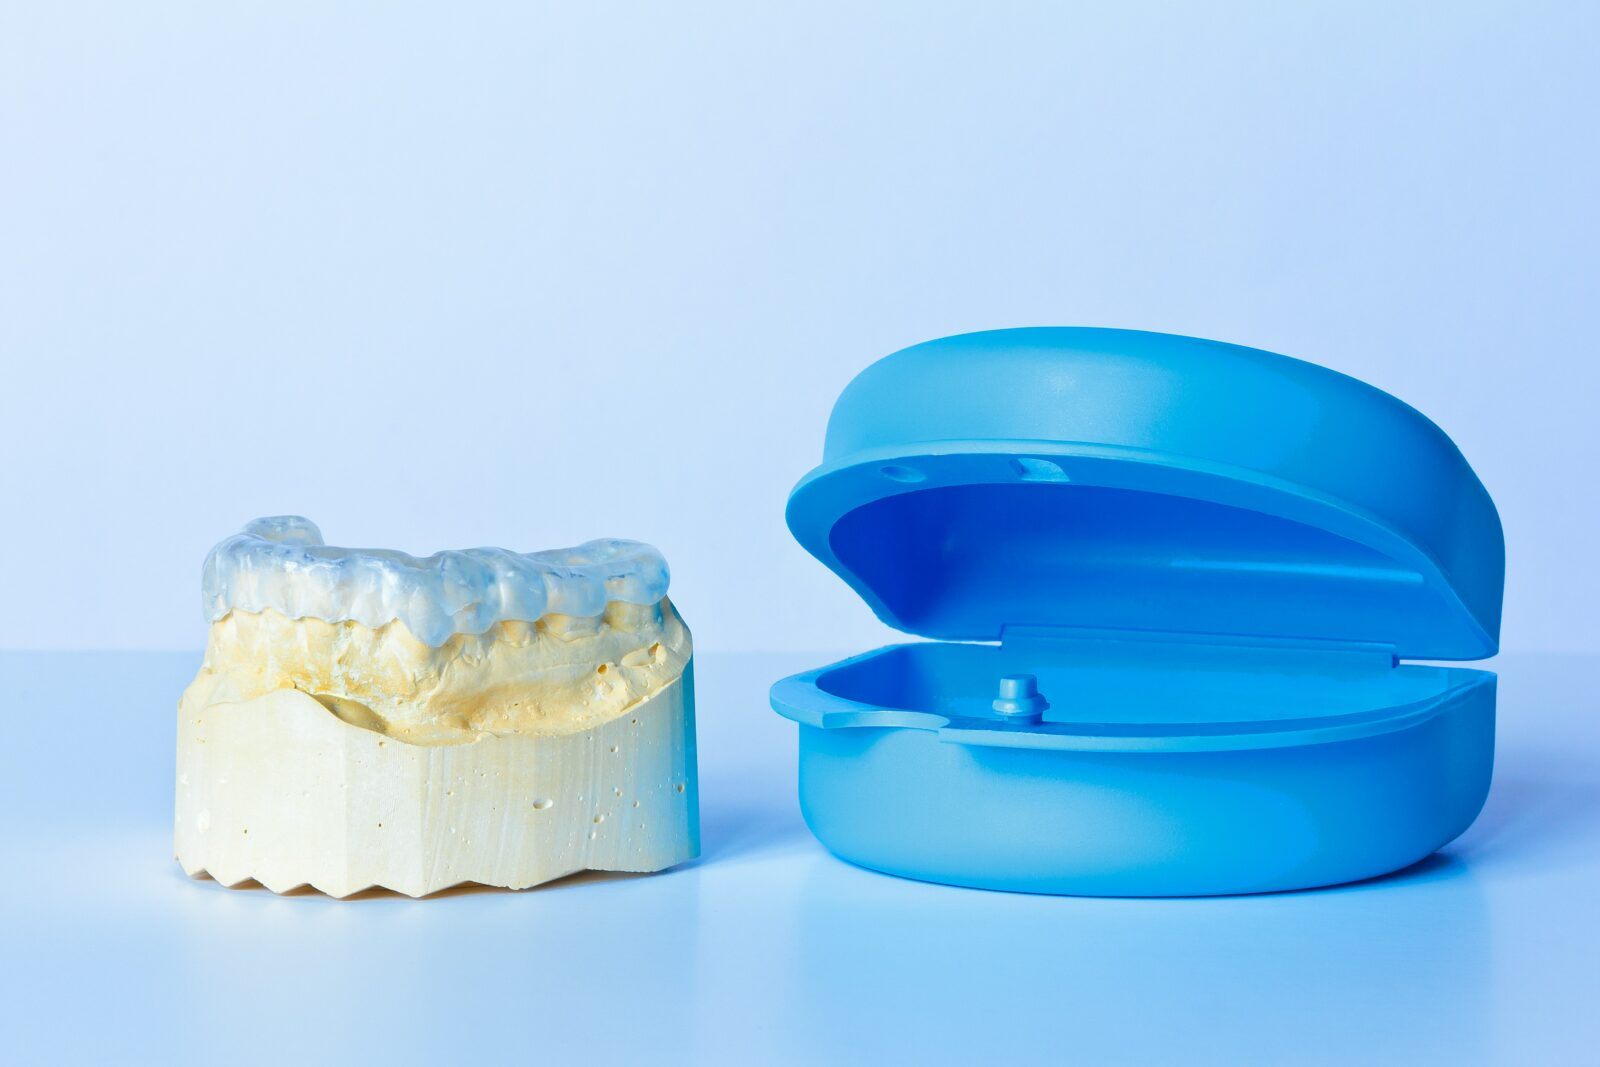 dental appliance on tooth model next to plastic case